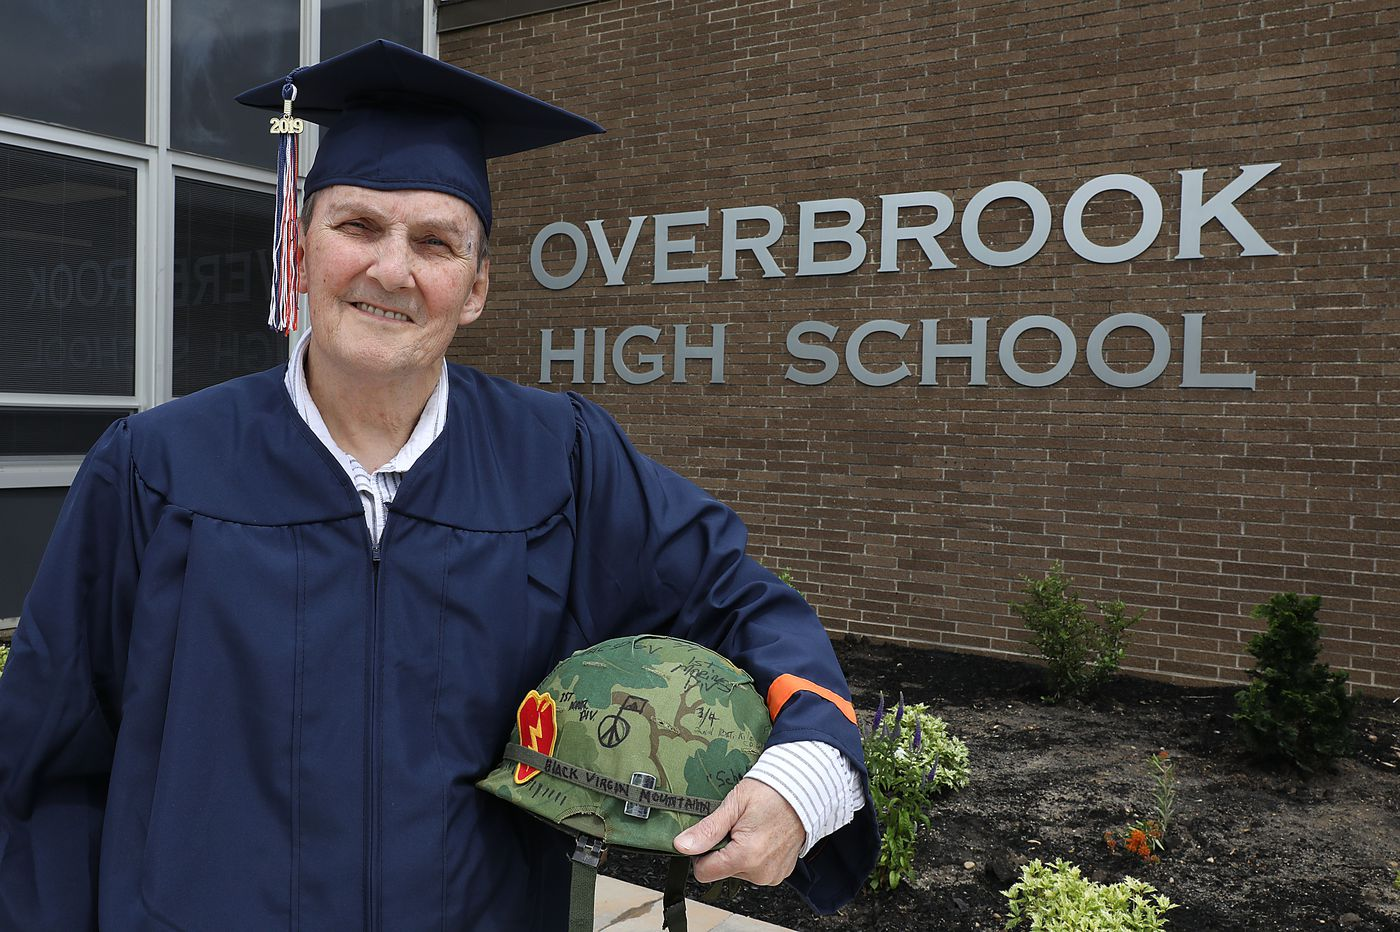 Vietnam veteran who dropped out to join Army gets high school diploma 50 years later